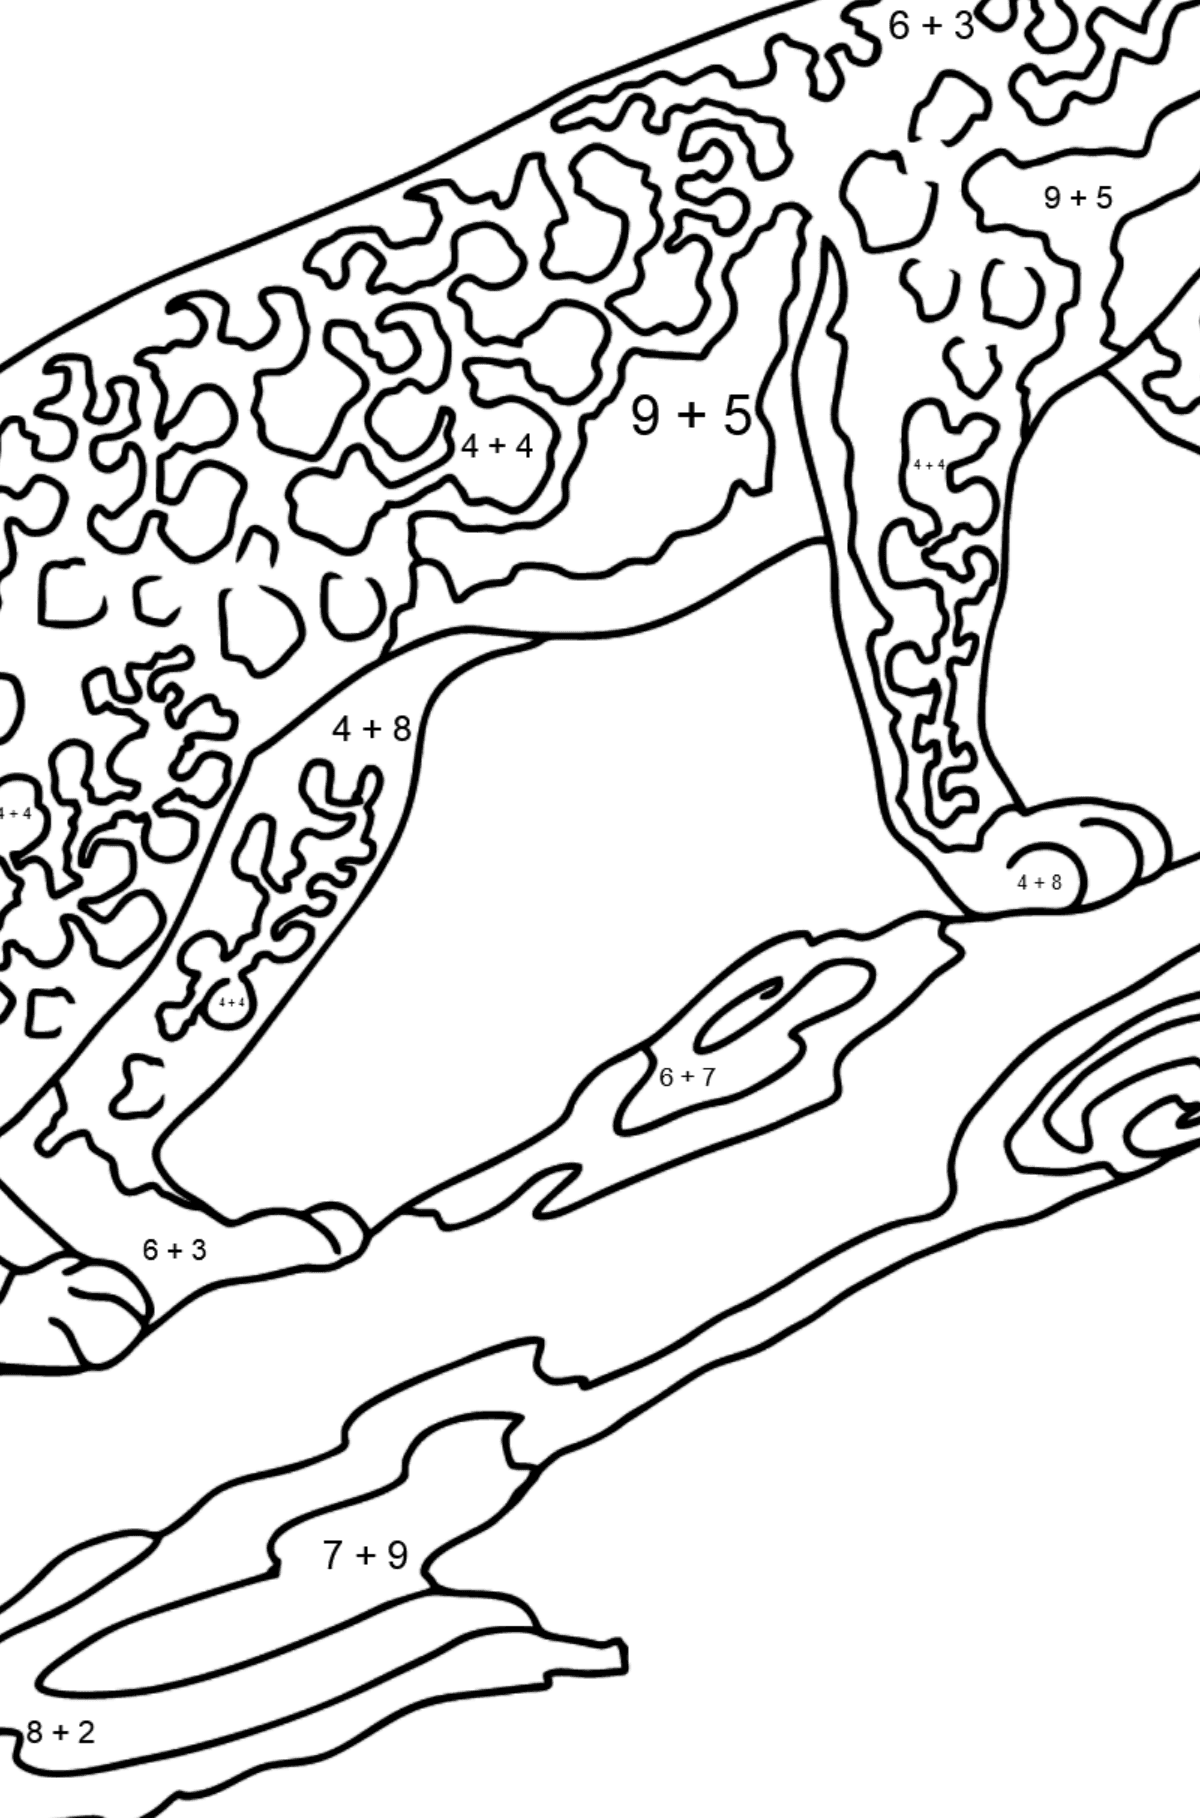 Coloring Page - A Leopard on a Branch - Math Coloring - Addition for Kids